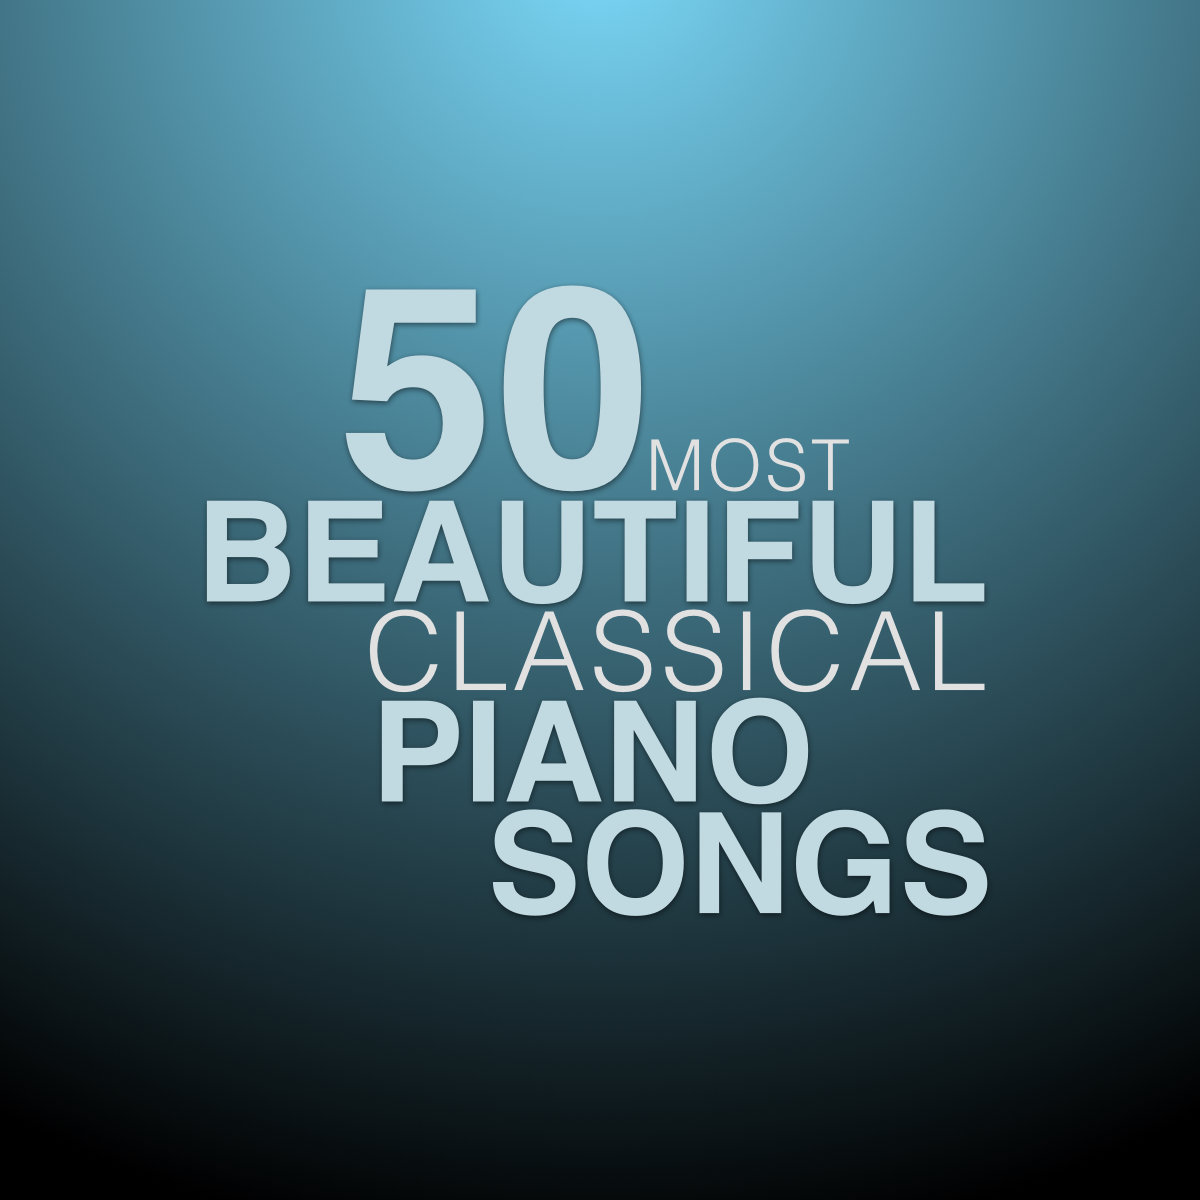 50 Most Beautiful Classical Piano Songs